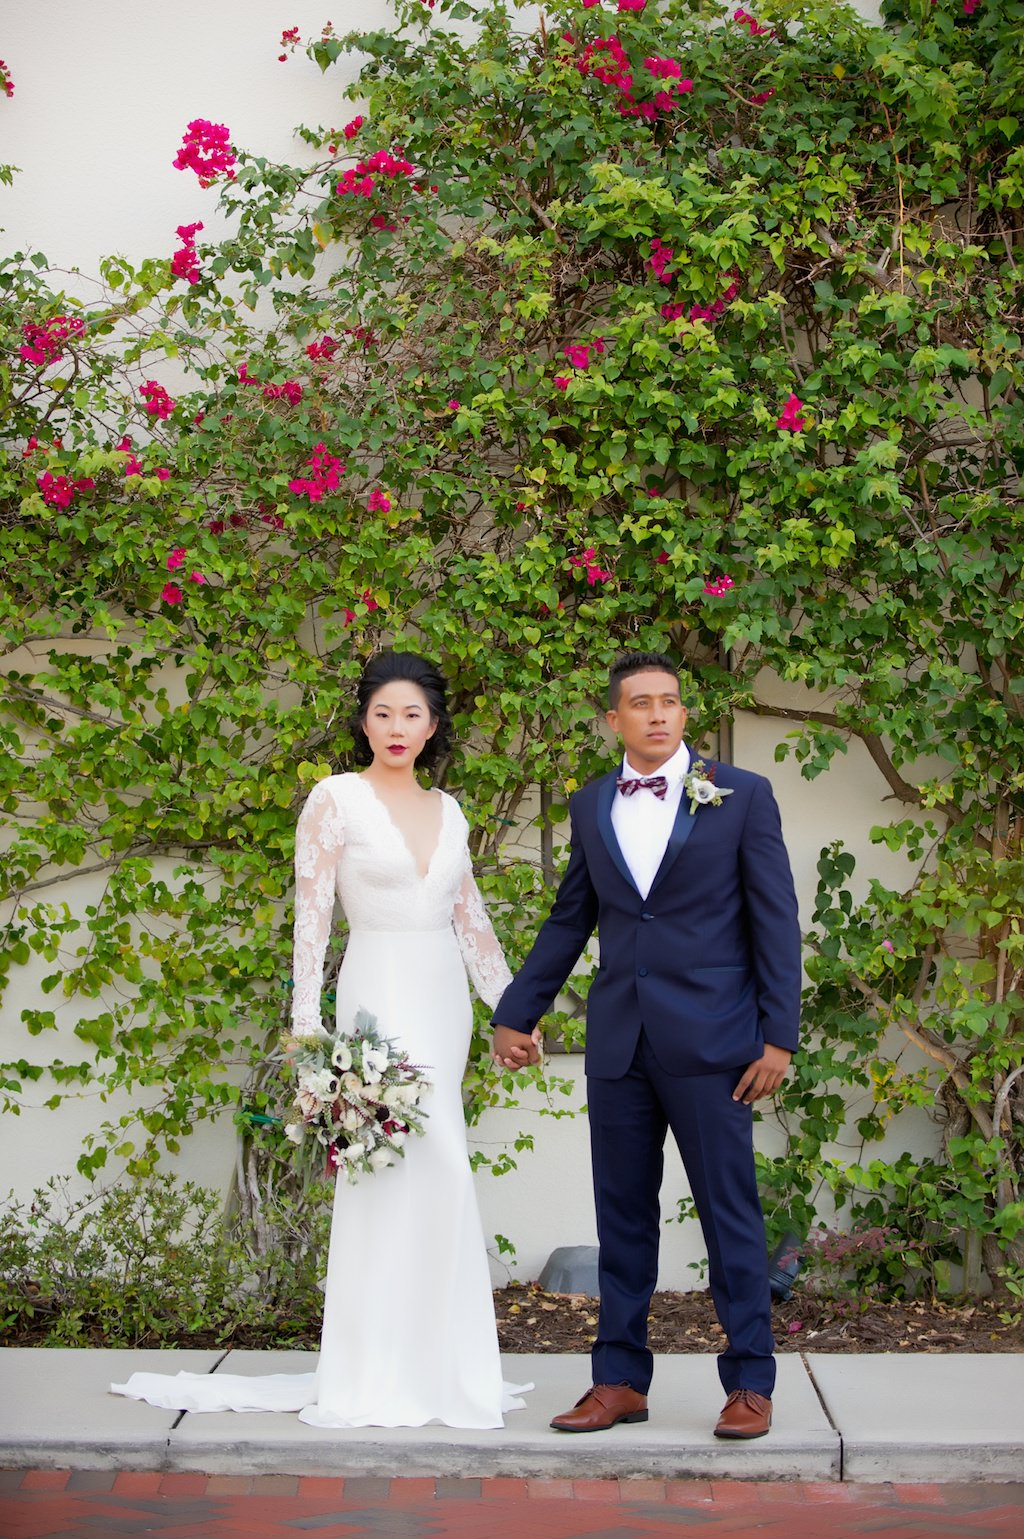 Outdoor Garden Bride and Groom Wedding Portrait, Bride in Long Sleeve V Neck Lace Daalarna Couture Wedding Dress from The Bride Tampa, with Anemone and Greenery Bouquet, Groom in Blue Suit with Pink Bow Tie | Tampa Bay Wedding Photographer Andi Diamond Photography | Tampa Wedding Venue Westshore Yacht Club | Mens Suit Sacinos Formalwear